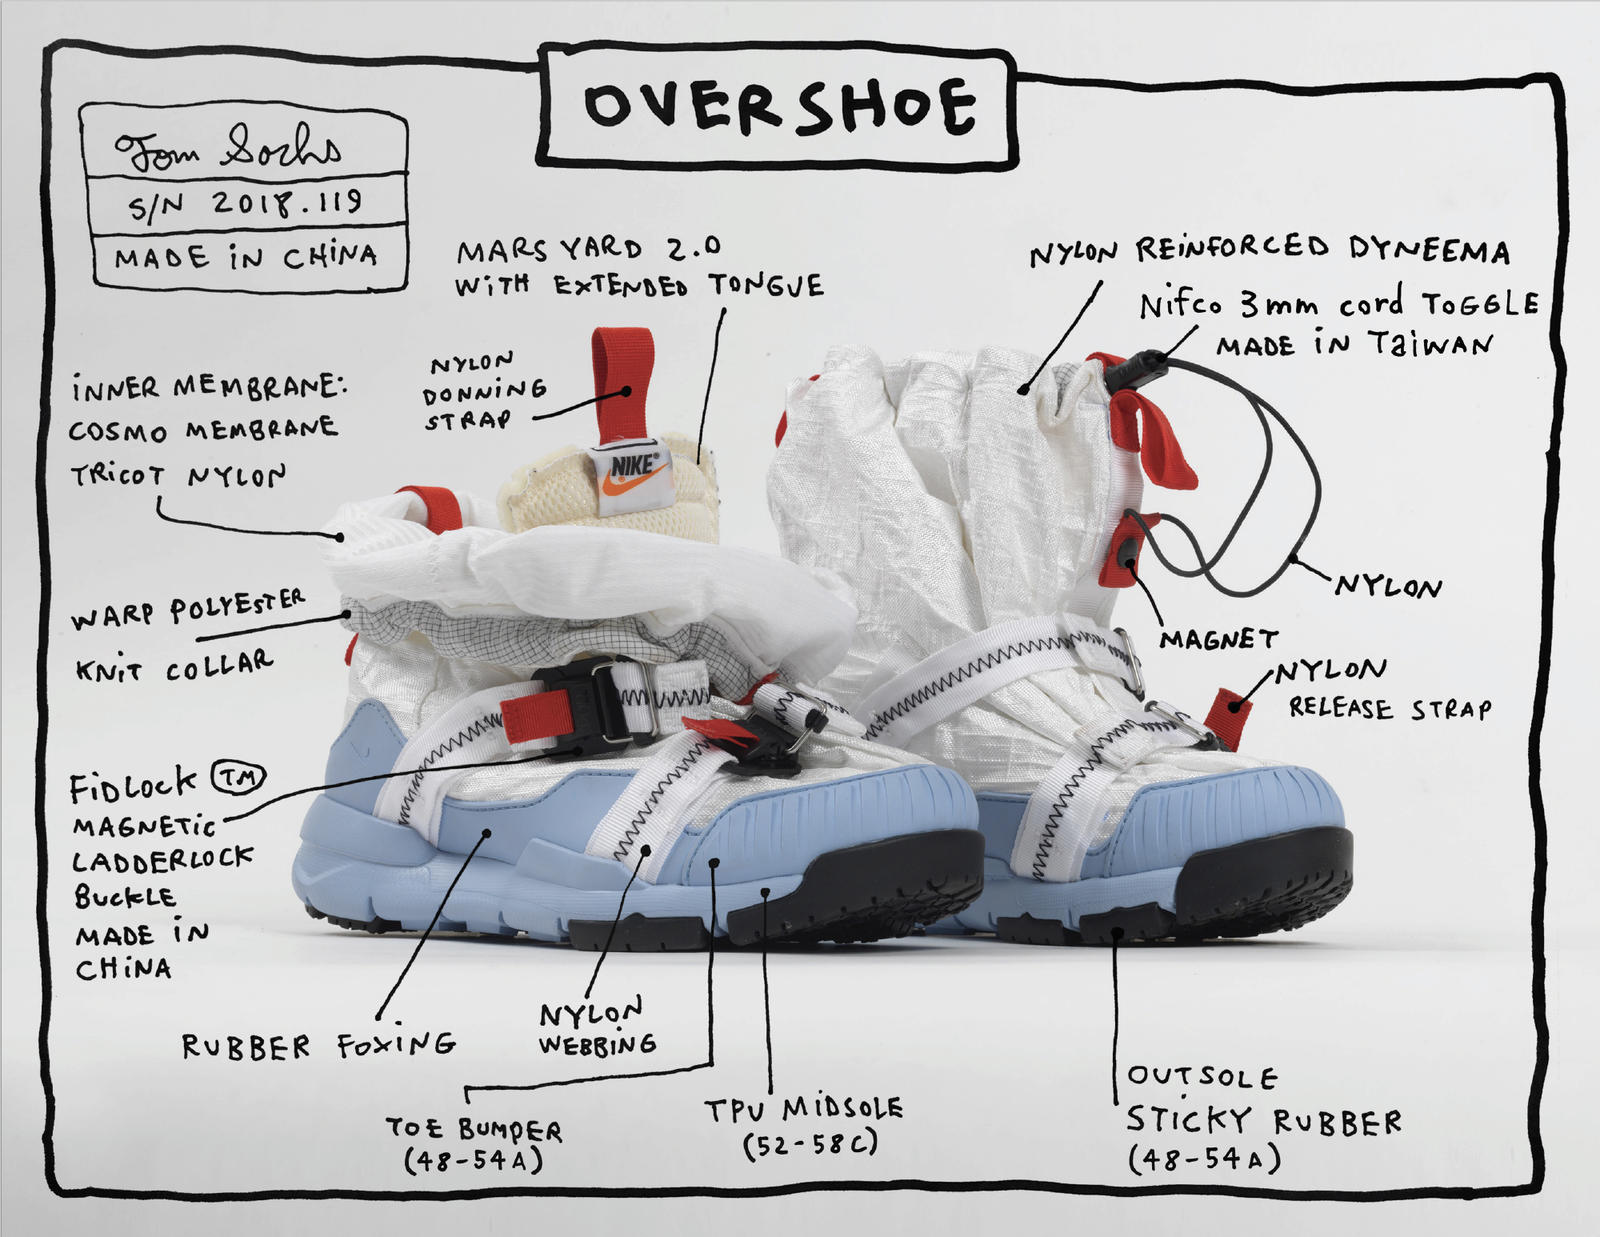 nike-tom-sachs_NN_IMAGE_native_1600.jpg